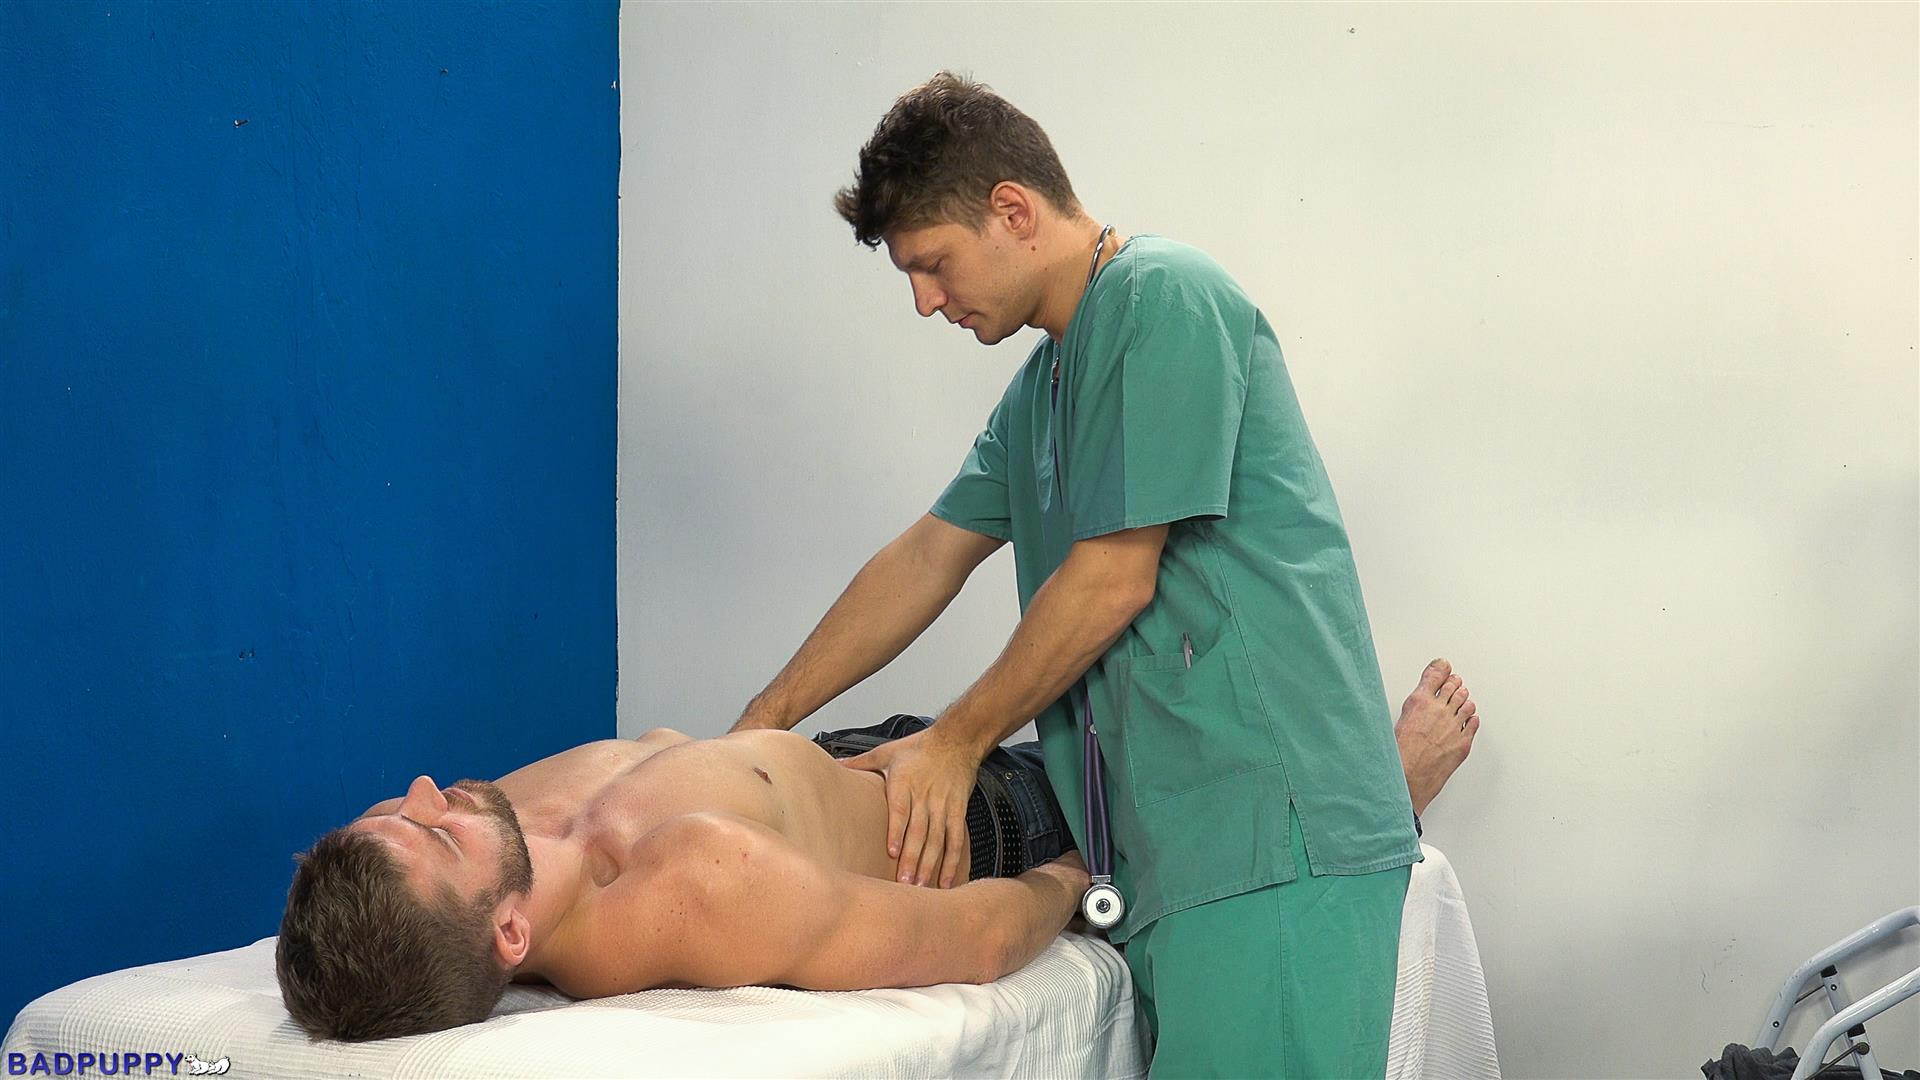 Badpuppy Nikol Monak and Rosta Benecky Czech Guys Fucking Bareback Amateur Gay Porn 04 Czech Hunks With Big Uncut Cocks Fucking At The Doctors Office